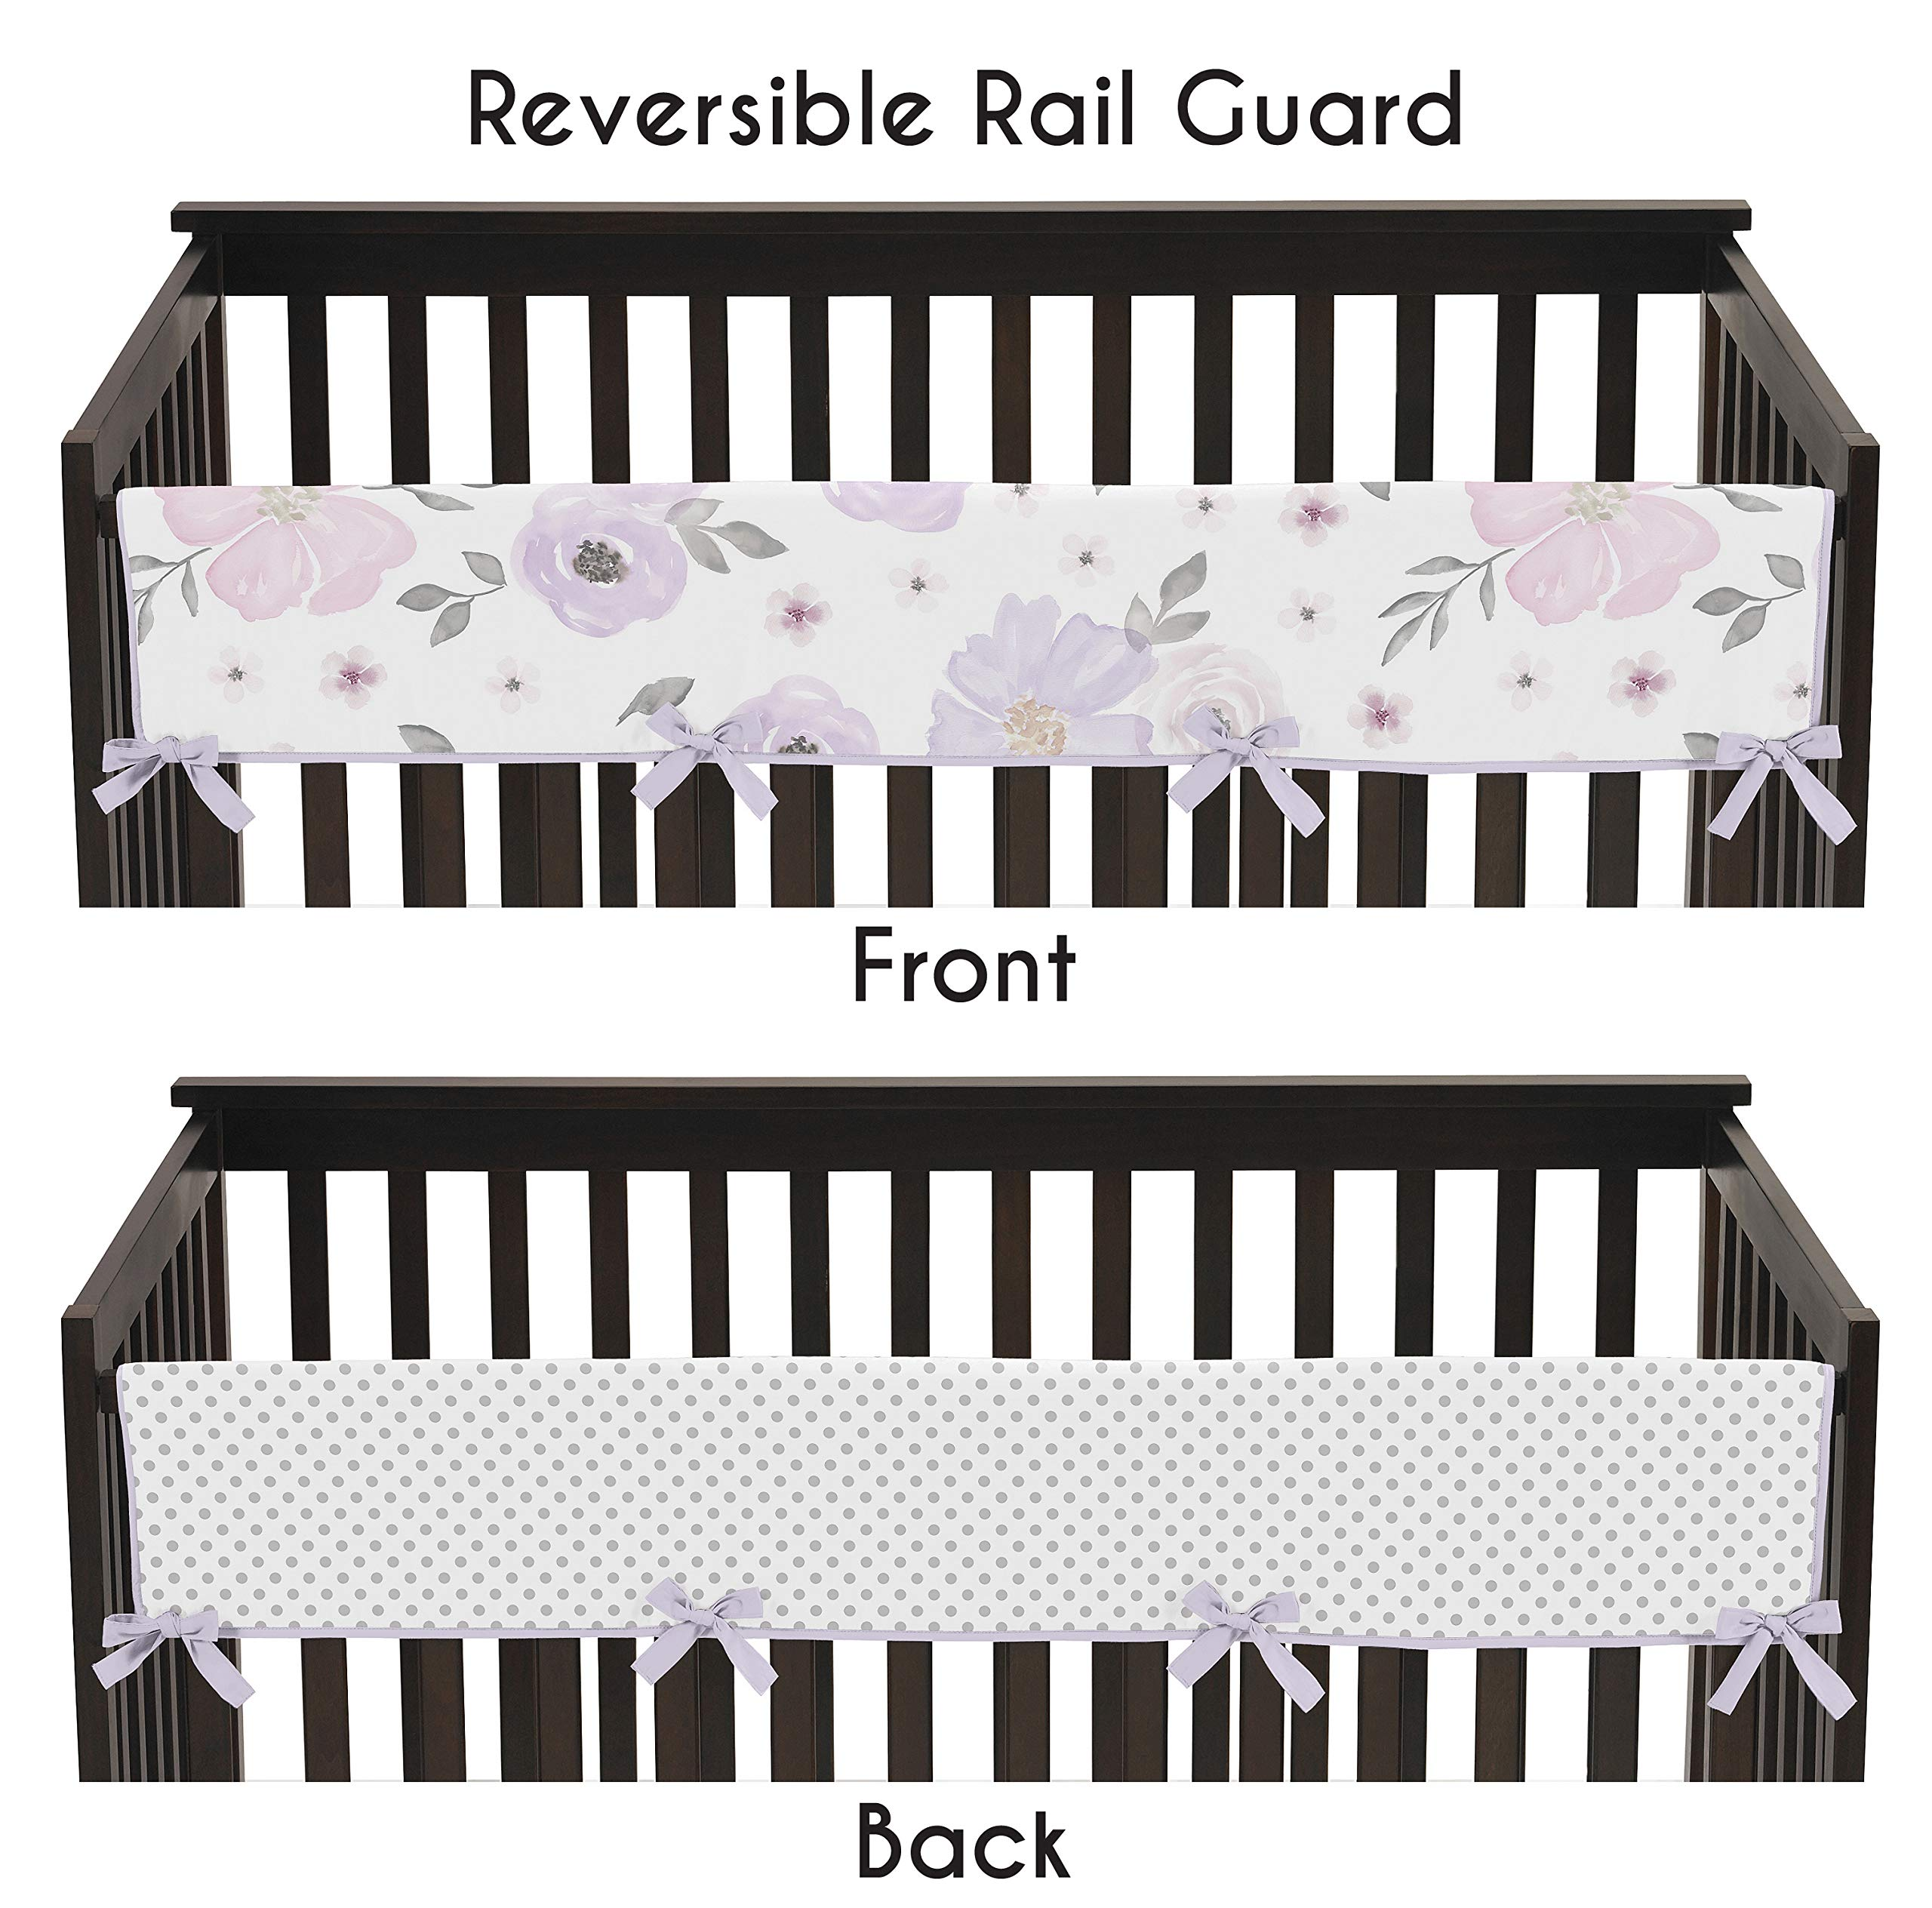 Sweet Jojo Designs Lavender Purple, Pink, Grey and White Polka Dot Long Front Crib Rail Guard Baby Teething Cover Protector Wrap for Watercolor Floral Collection - Rose Flower Polka Dot